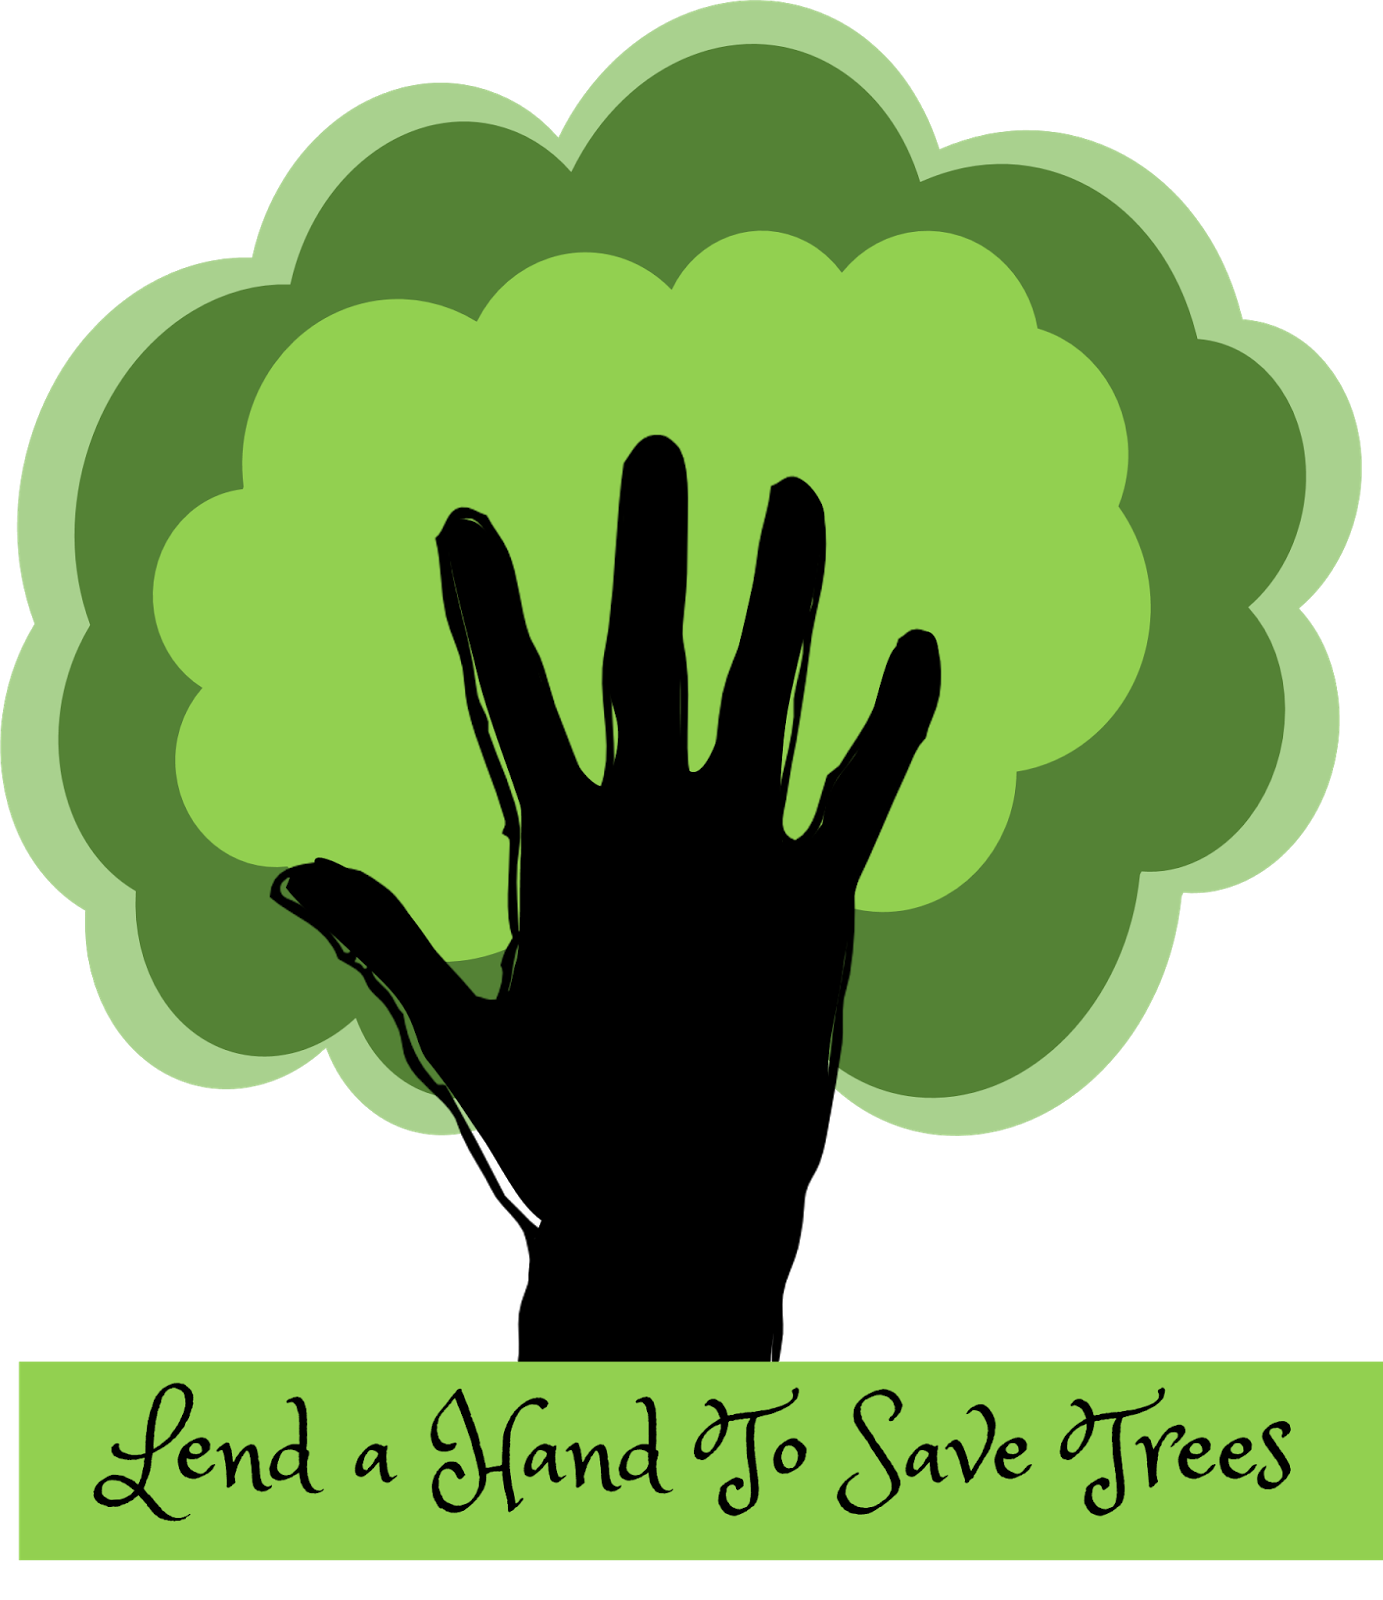 Environment clipart transparent. Save tree png images